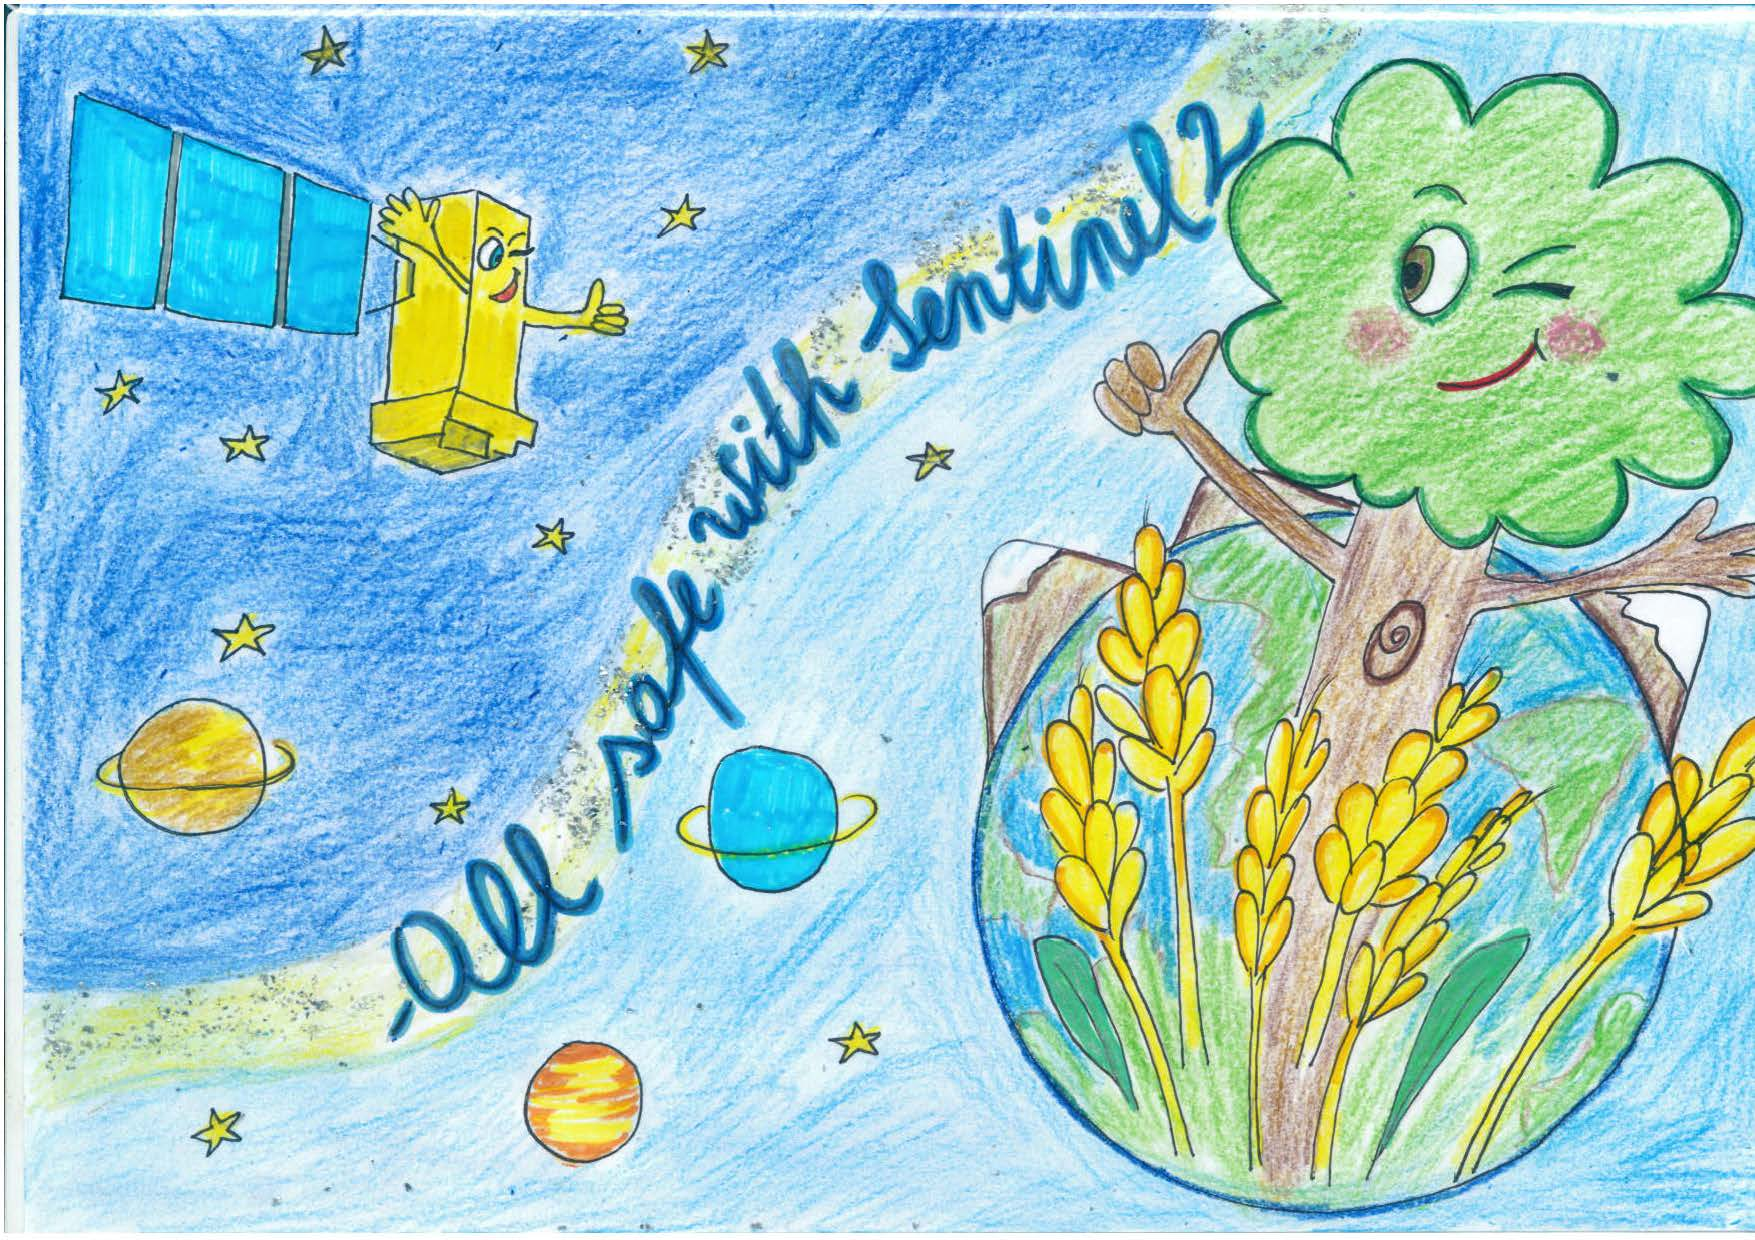 Space in Images - 2015 - 07 - Sentinel-2 kids' competition ...